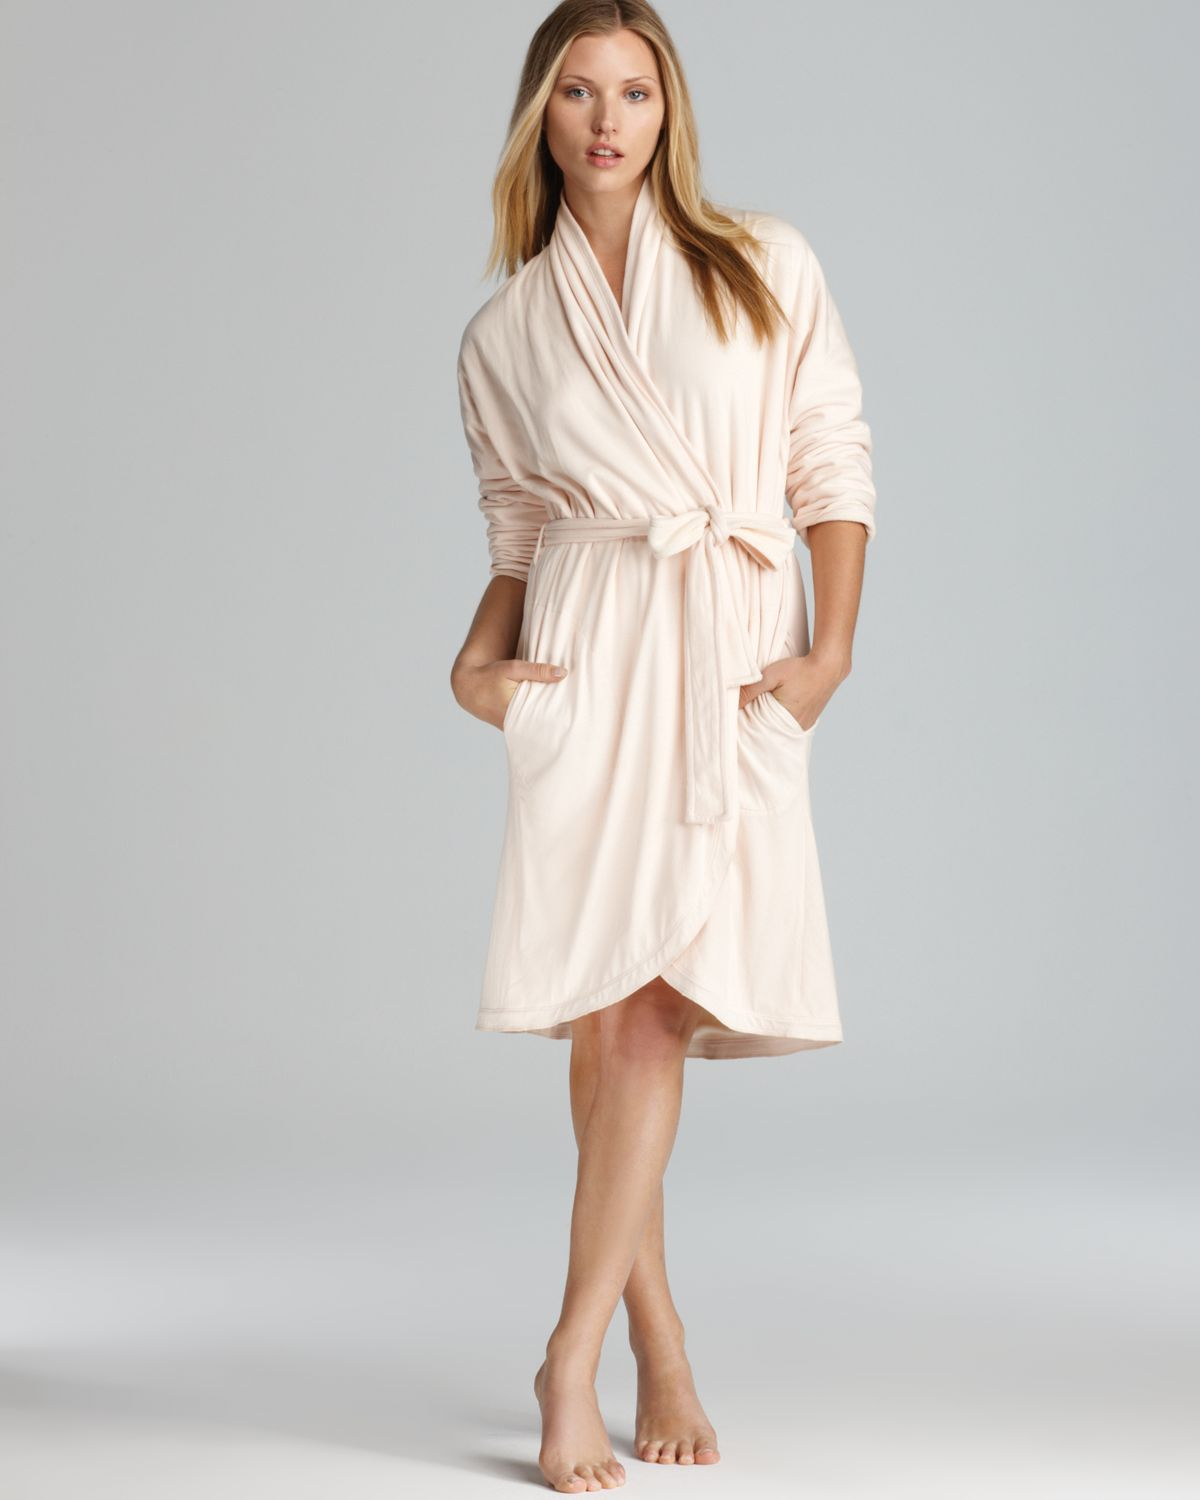 Lyst - Donna Karan Casual Luxe Cotton Knit Robe in Pink 52439090f